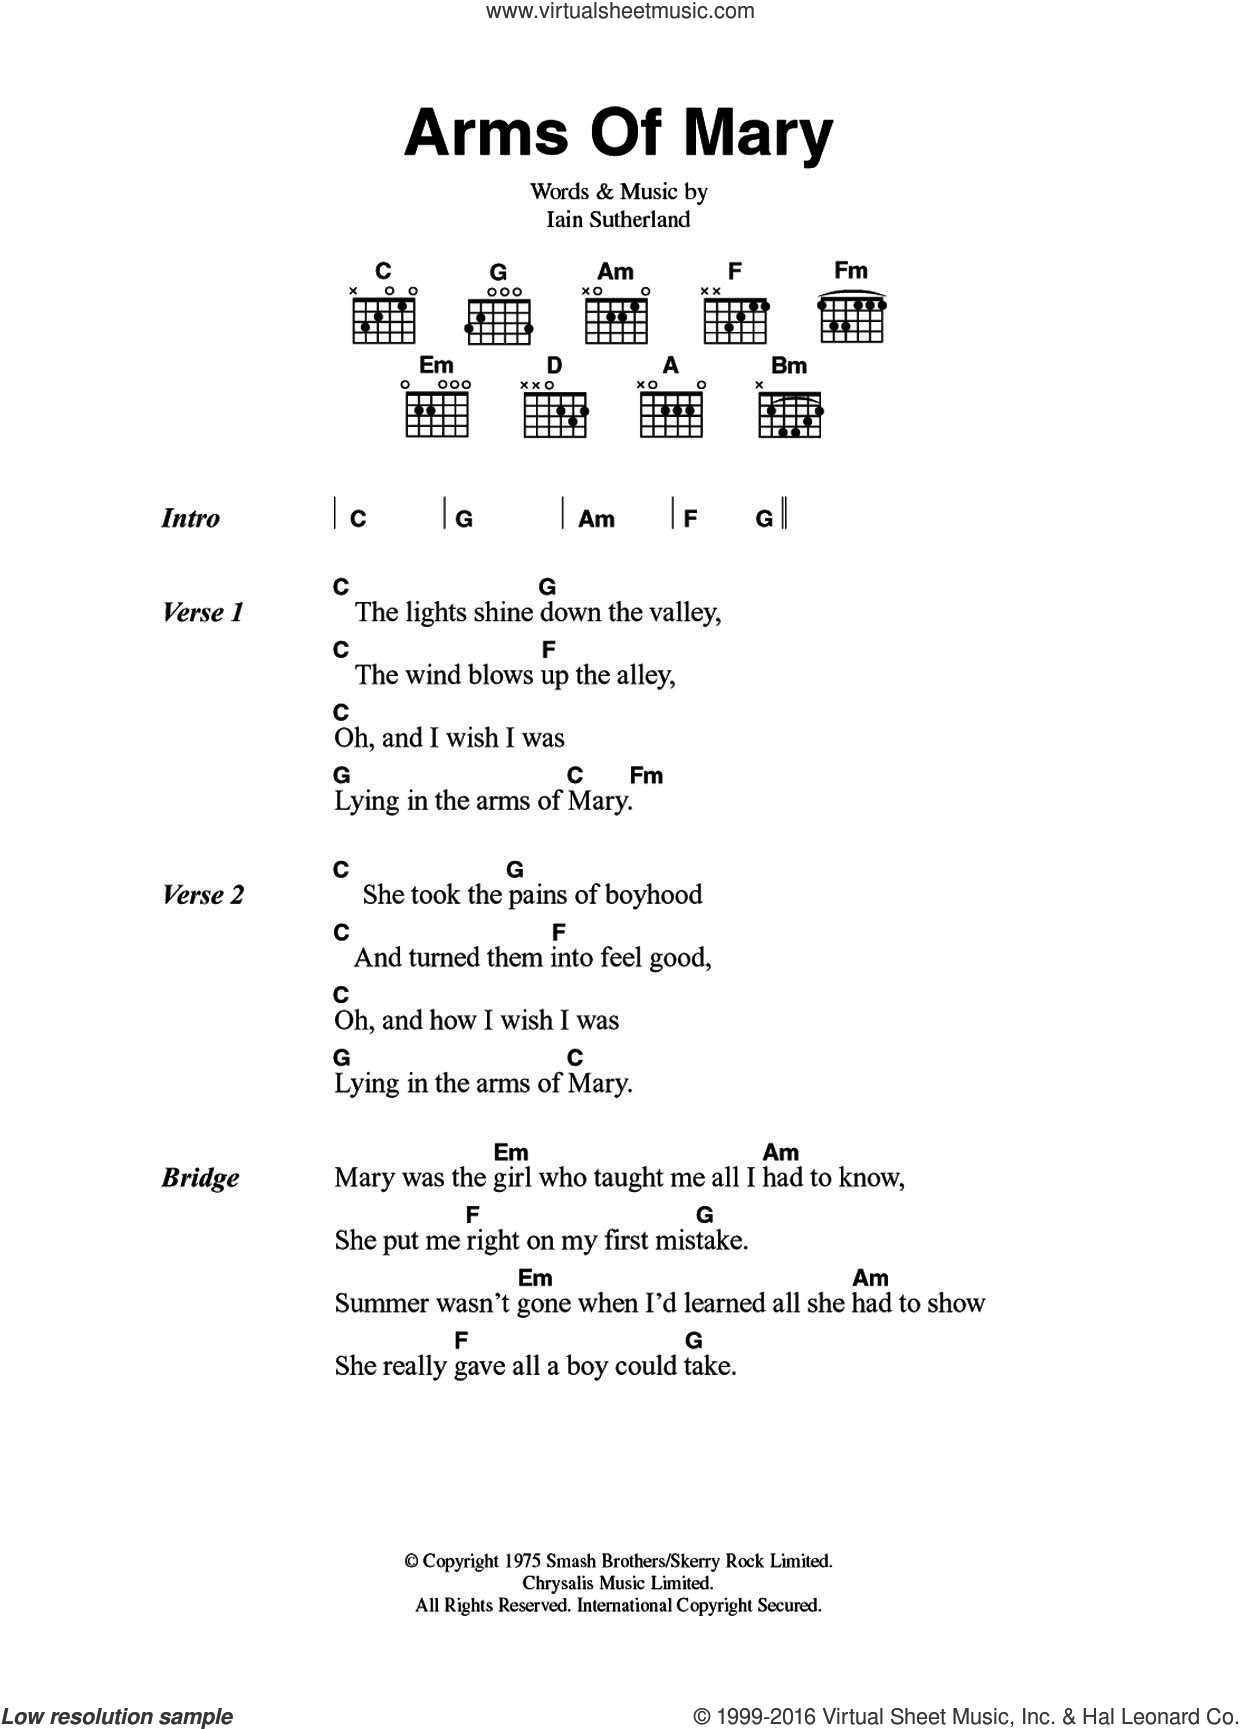 Arms Of Mary sheet music for guitar (chords) by Sutherland Brothers. Score Image Preview.